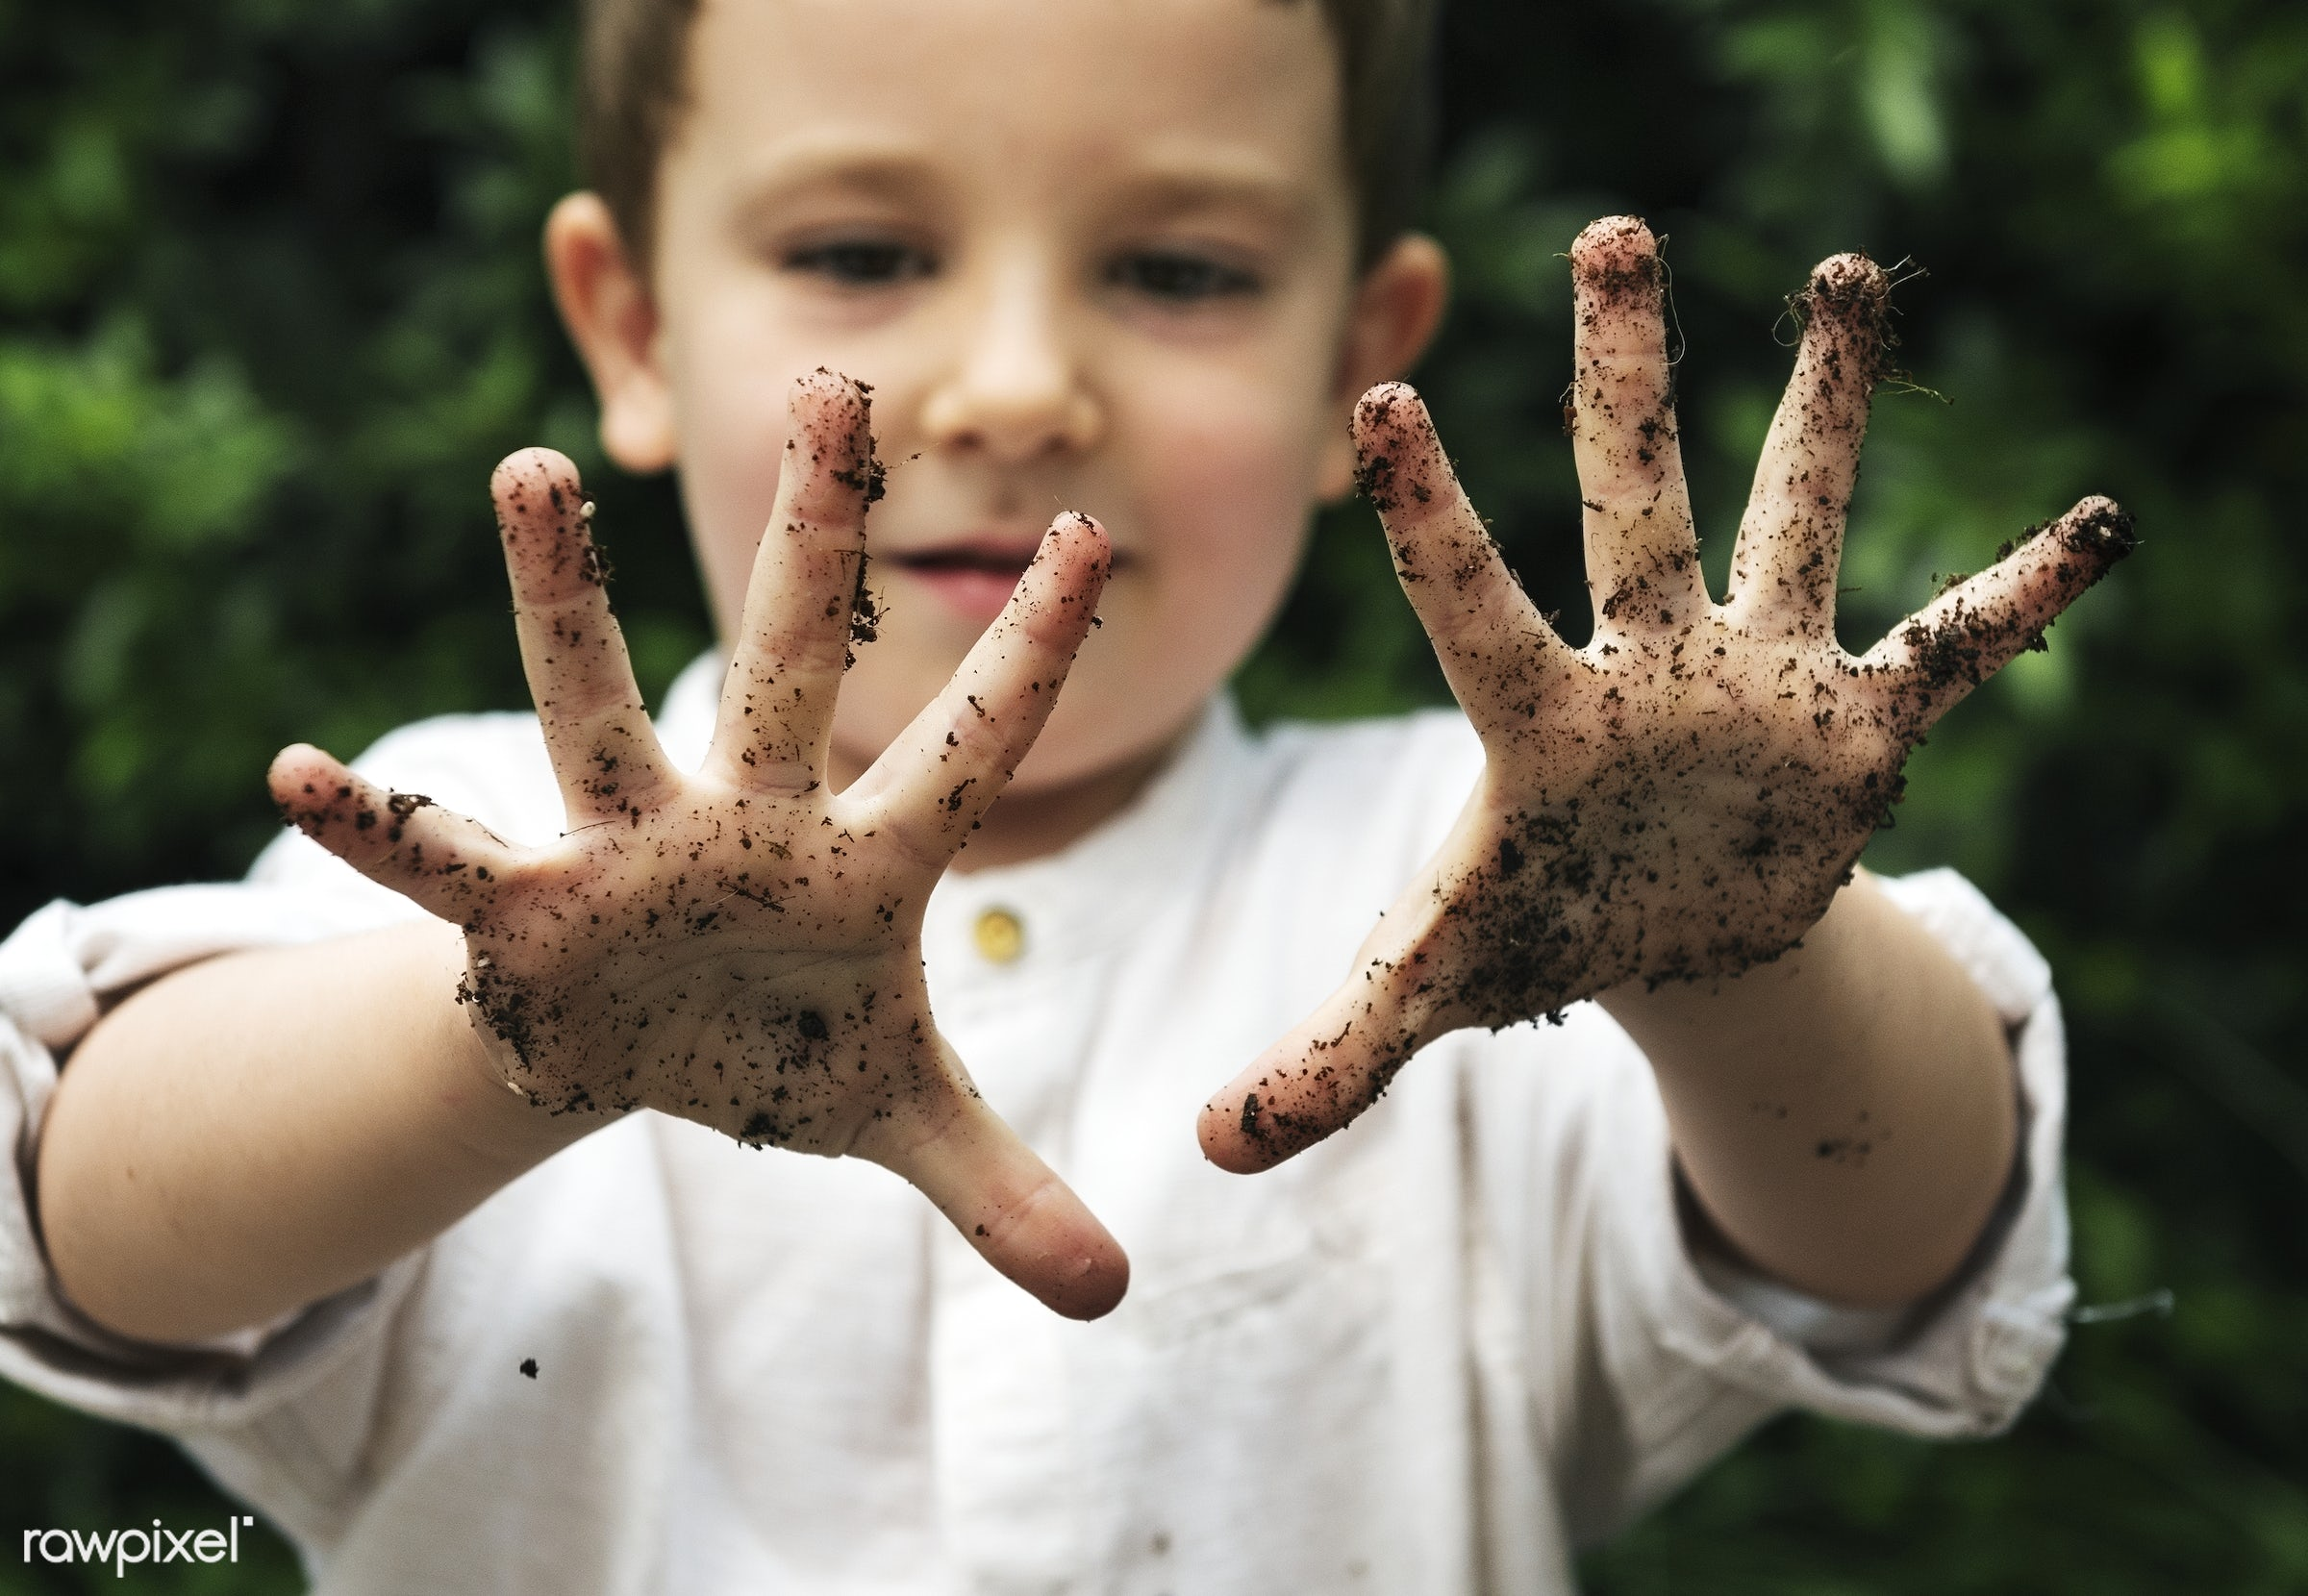 Young boy with dirty hands - kid, young, boy, child, dirty, hands, caucasian, dirt, soil, palms, outdoors, activity, people